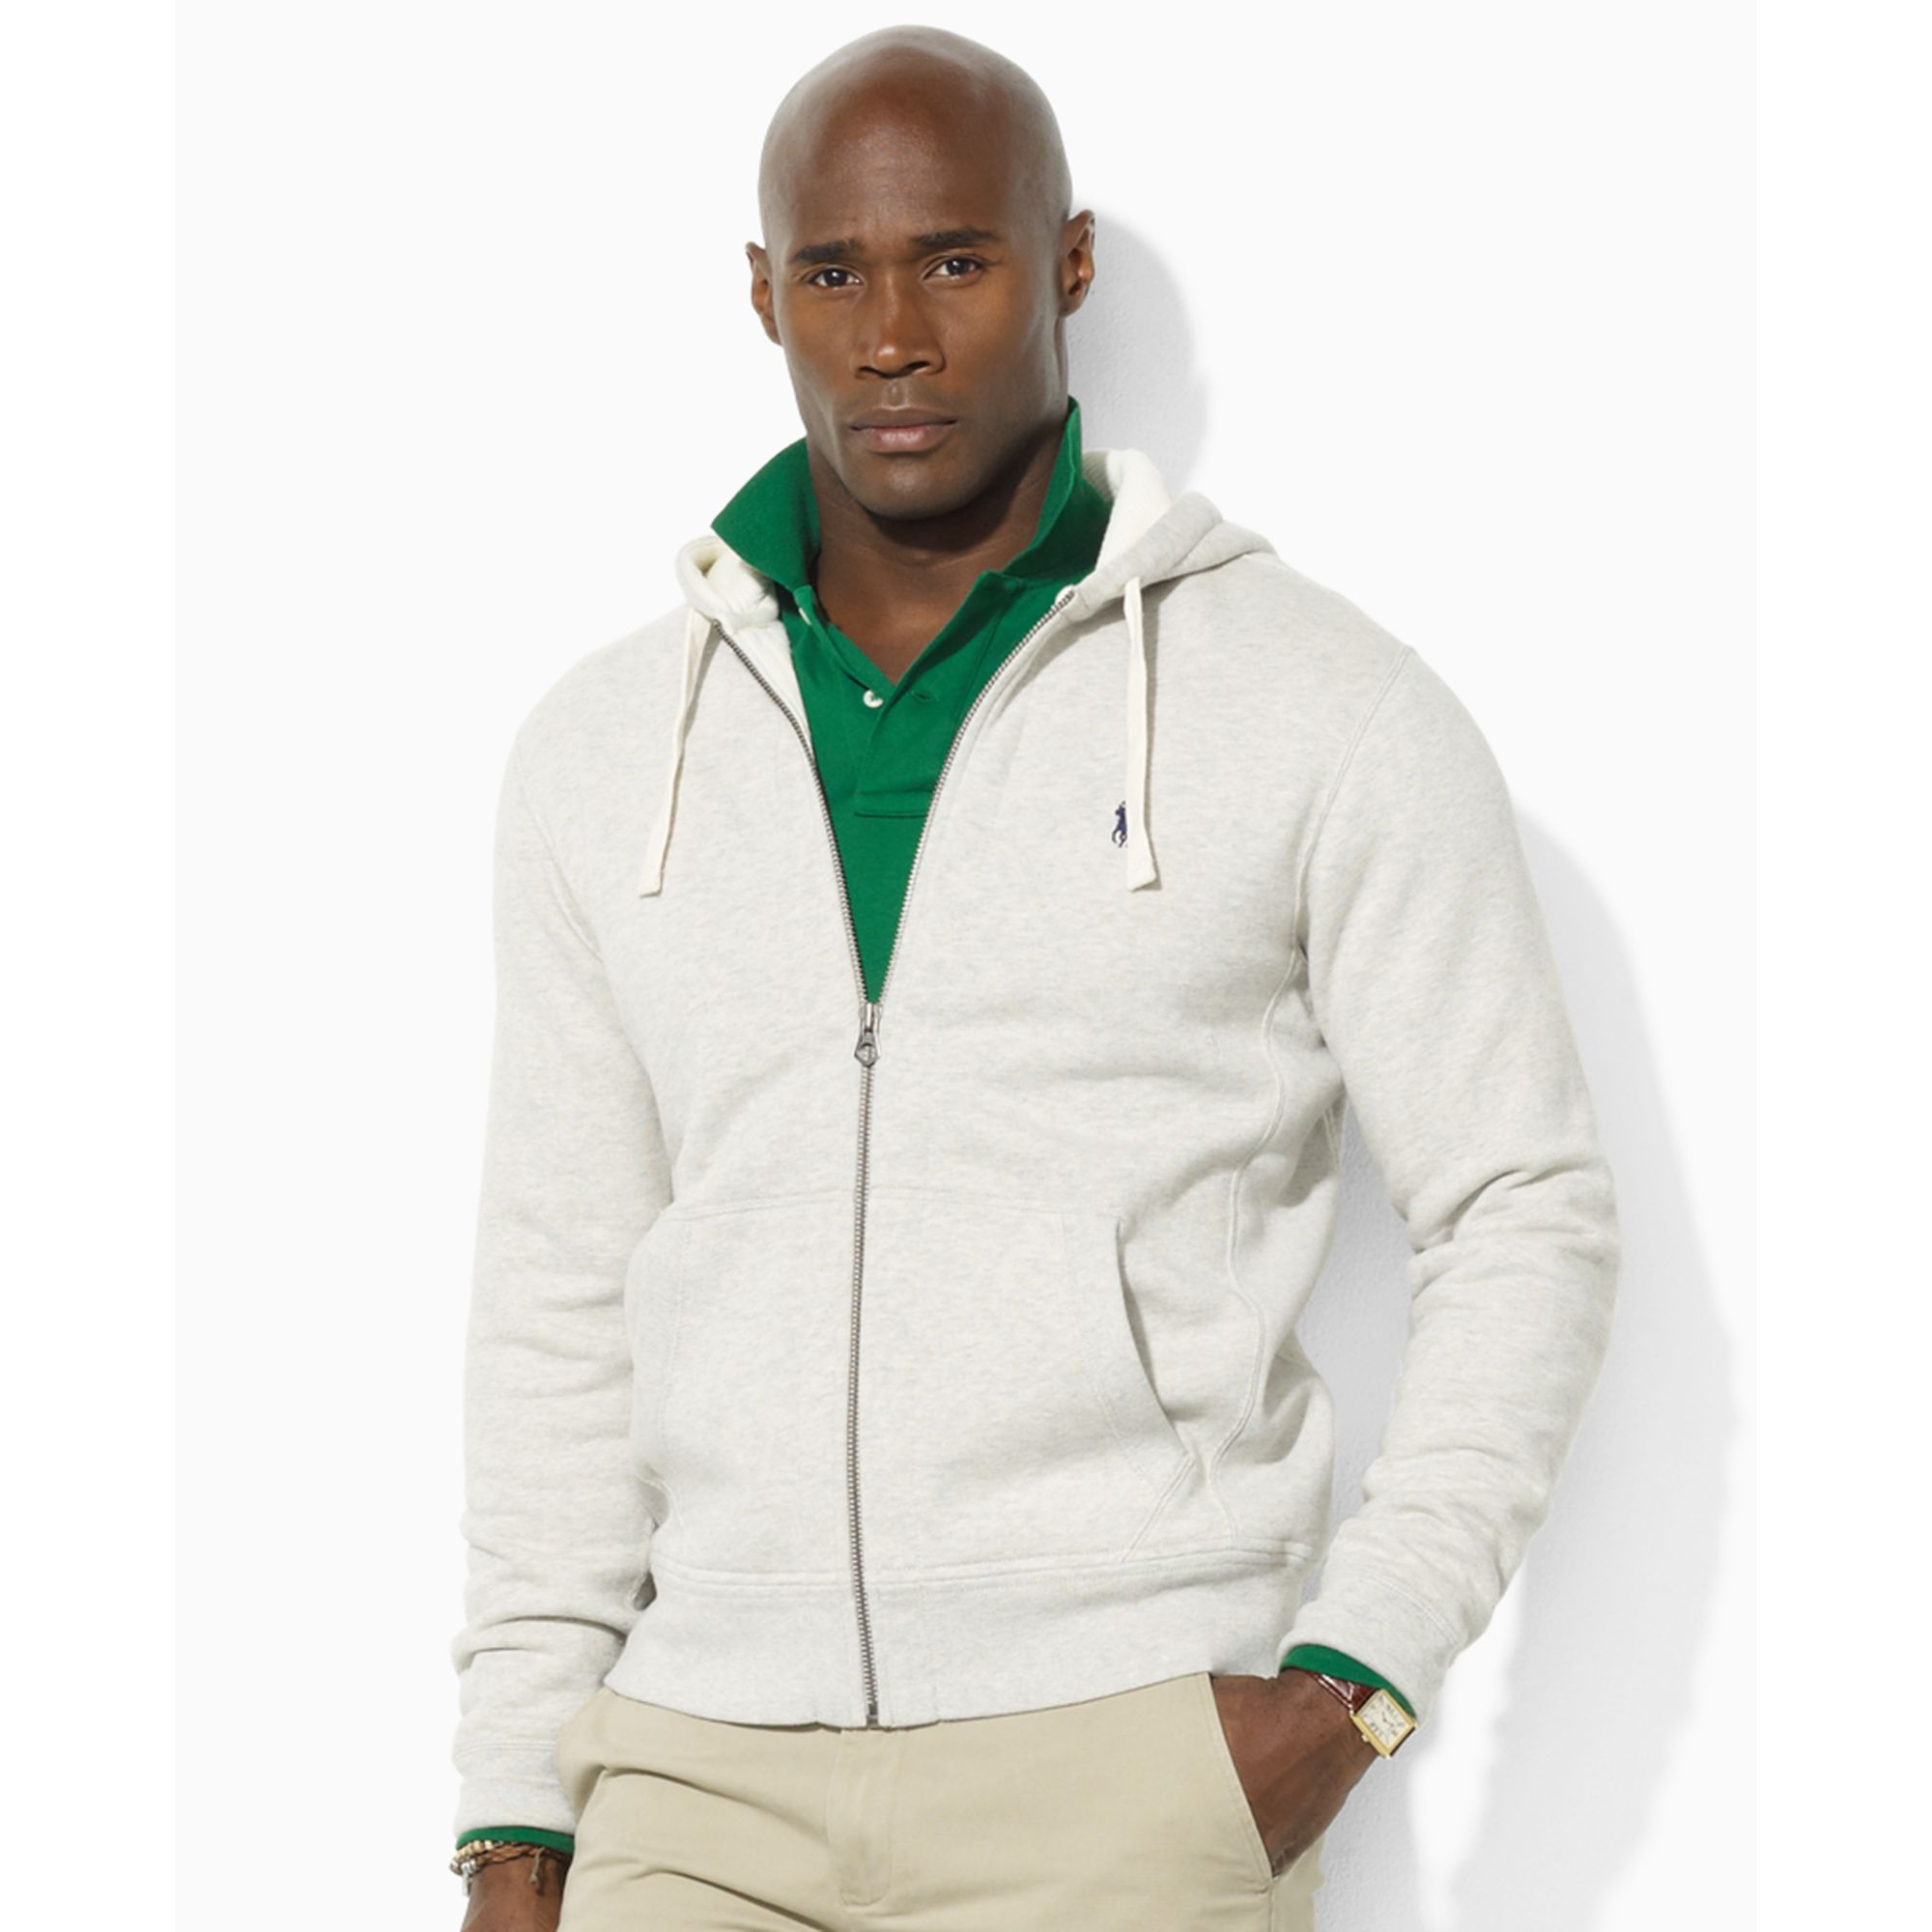 ralph lauren classic fleece hoodie in gray for men lyst. Black Bedroom Furniture Sets. Home Design Ideas